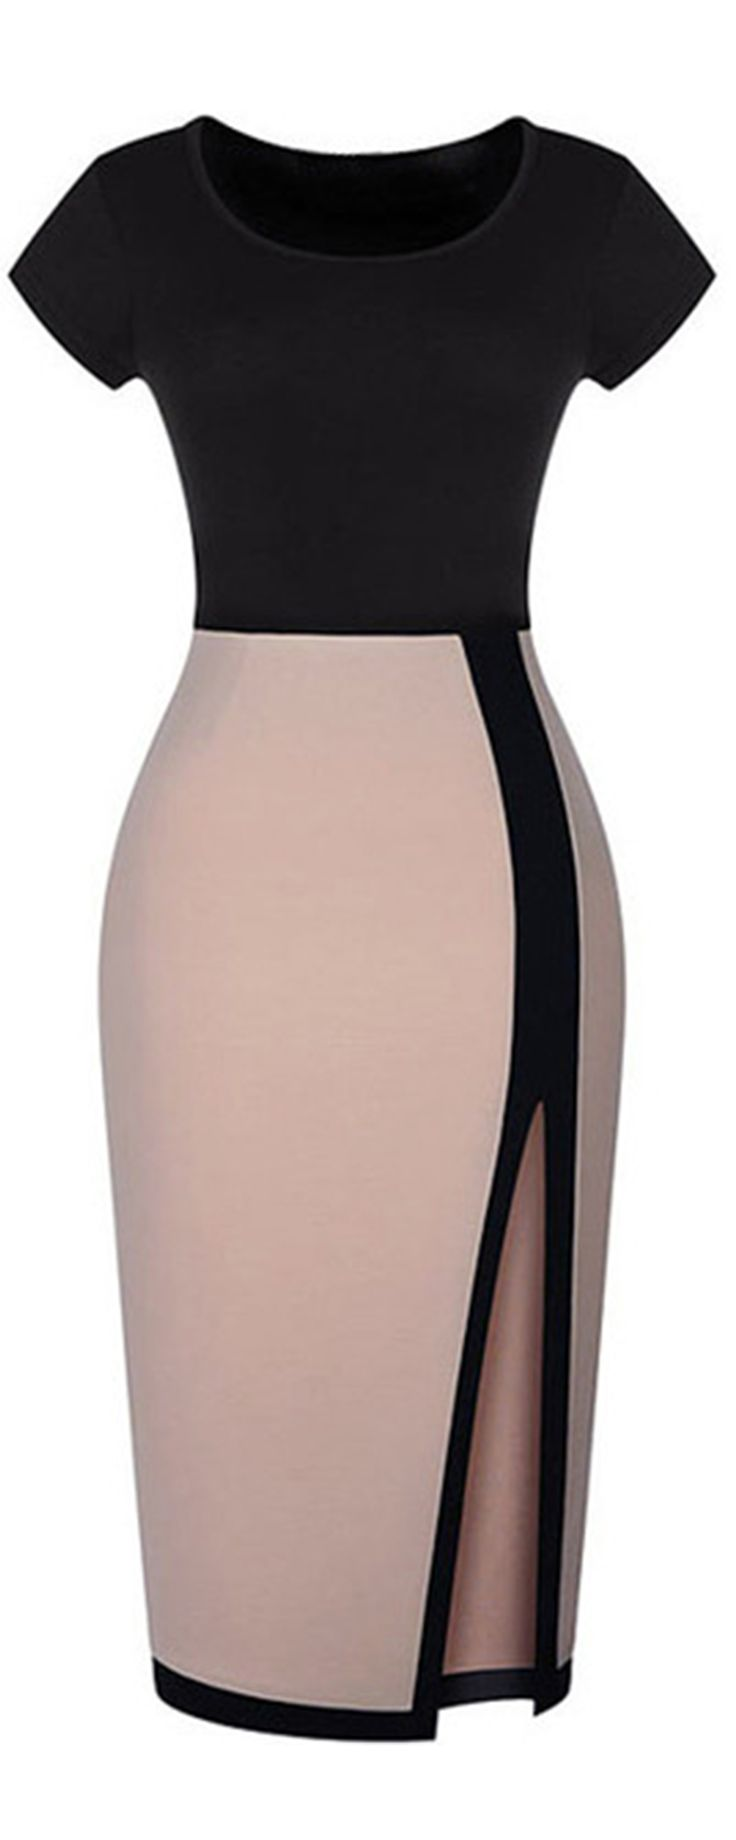 This bodycon dress can be a evening dress ,party dress & even a work dress .★We love the color block for the top and down for a chic look . ★All it needs to complete the look are your trusty killer heels and a tone of statement bracelets.